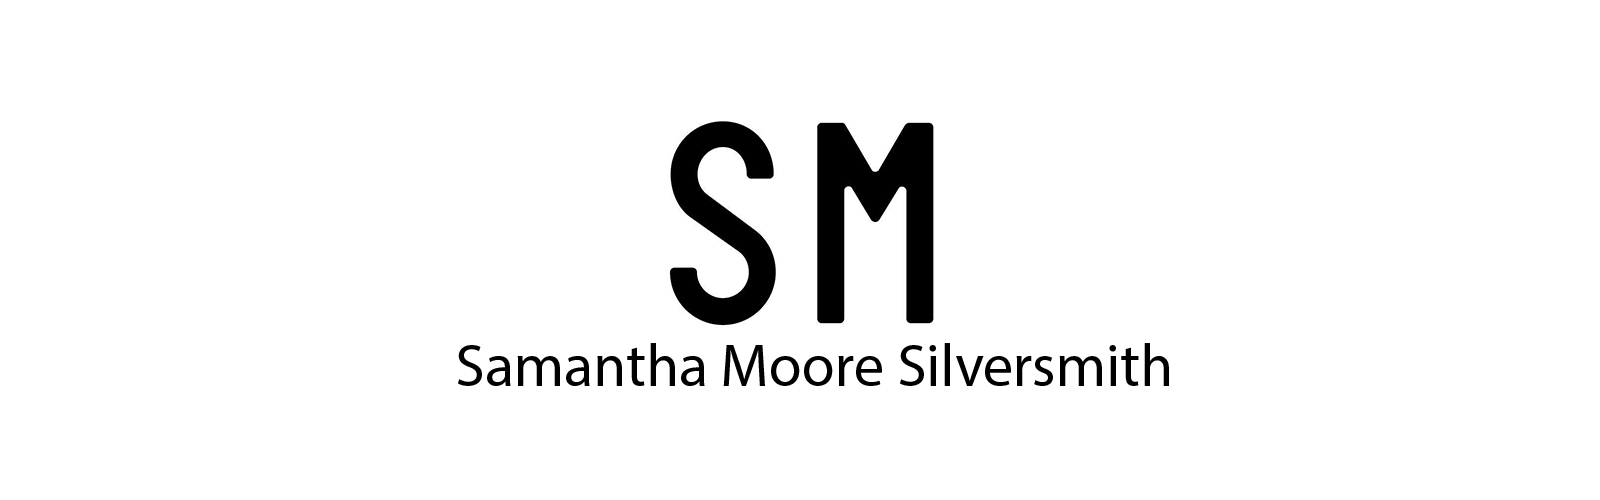 https://www.facebook.com/pages/Samantha-Moore-Silversmith/132109793533206?sk=timeline